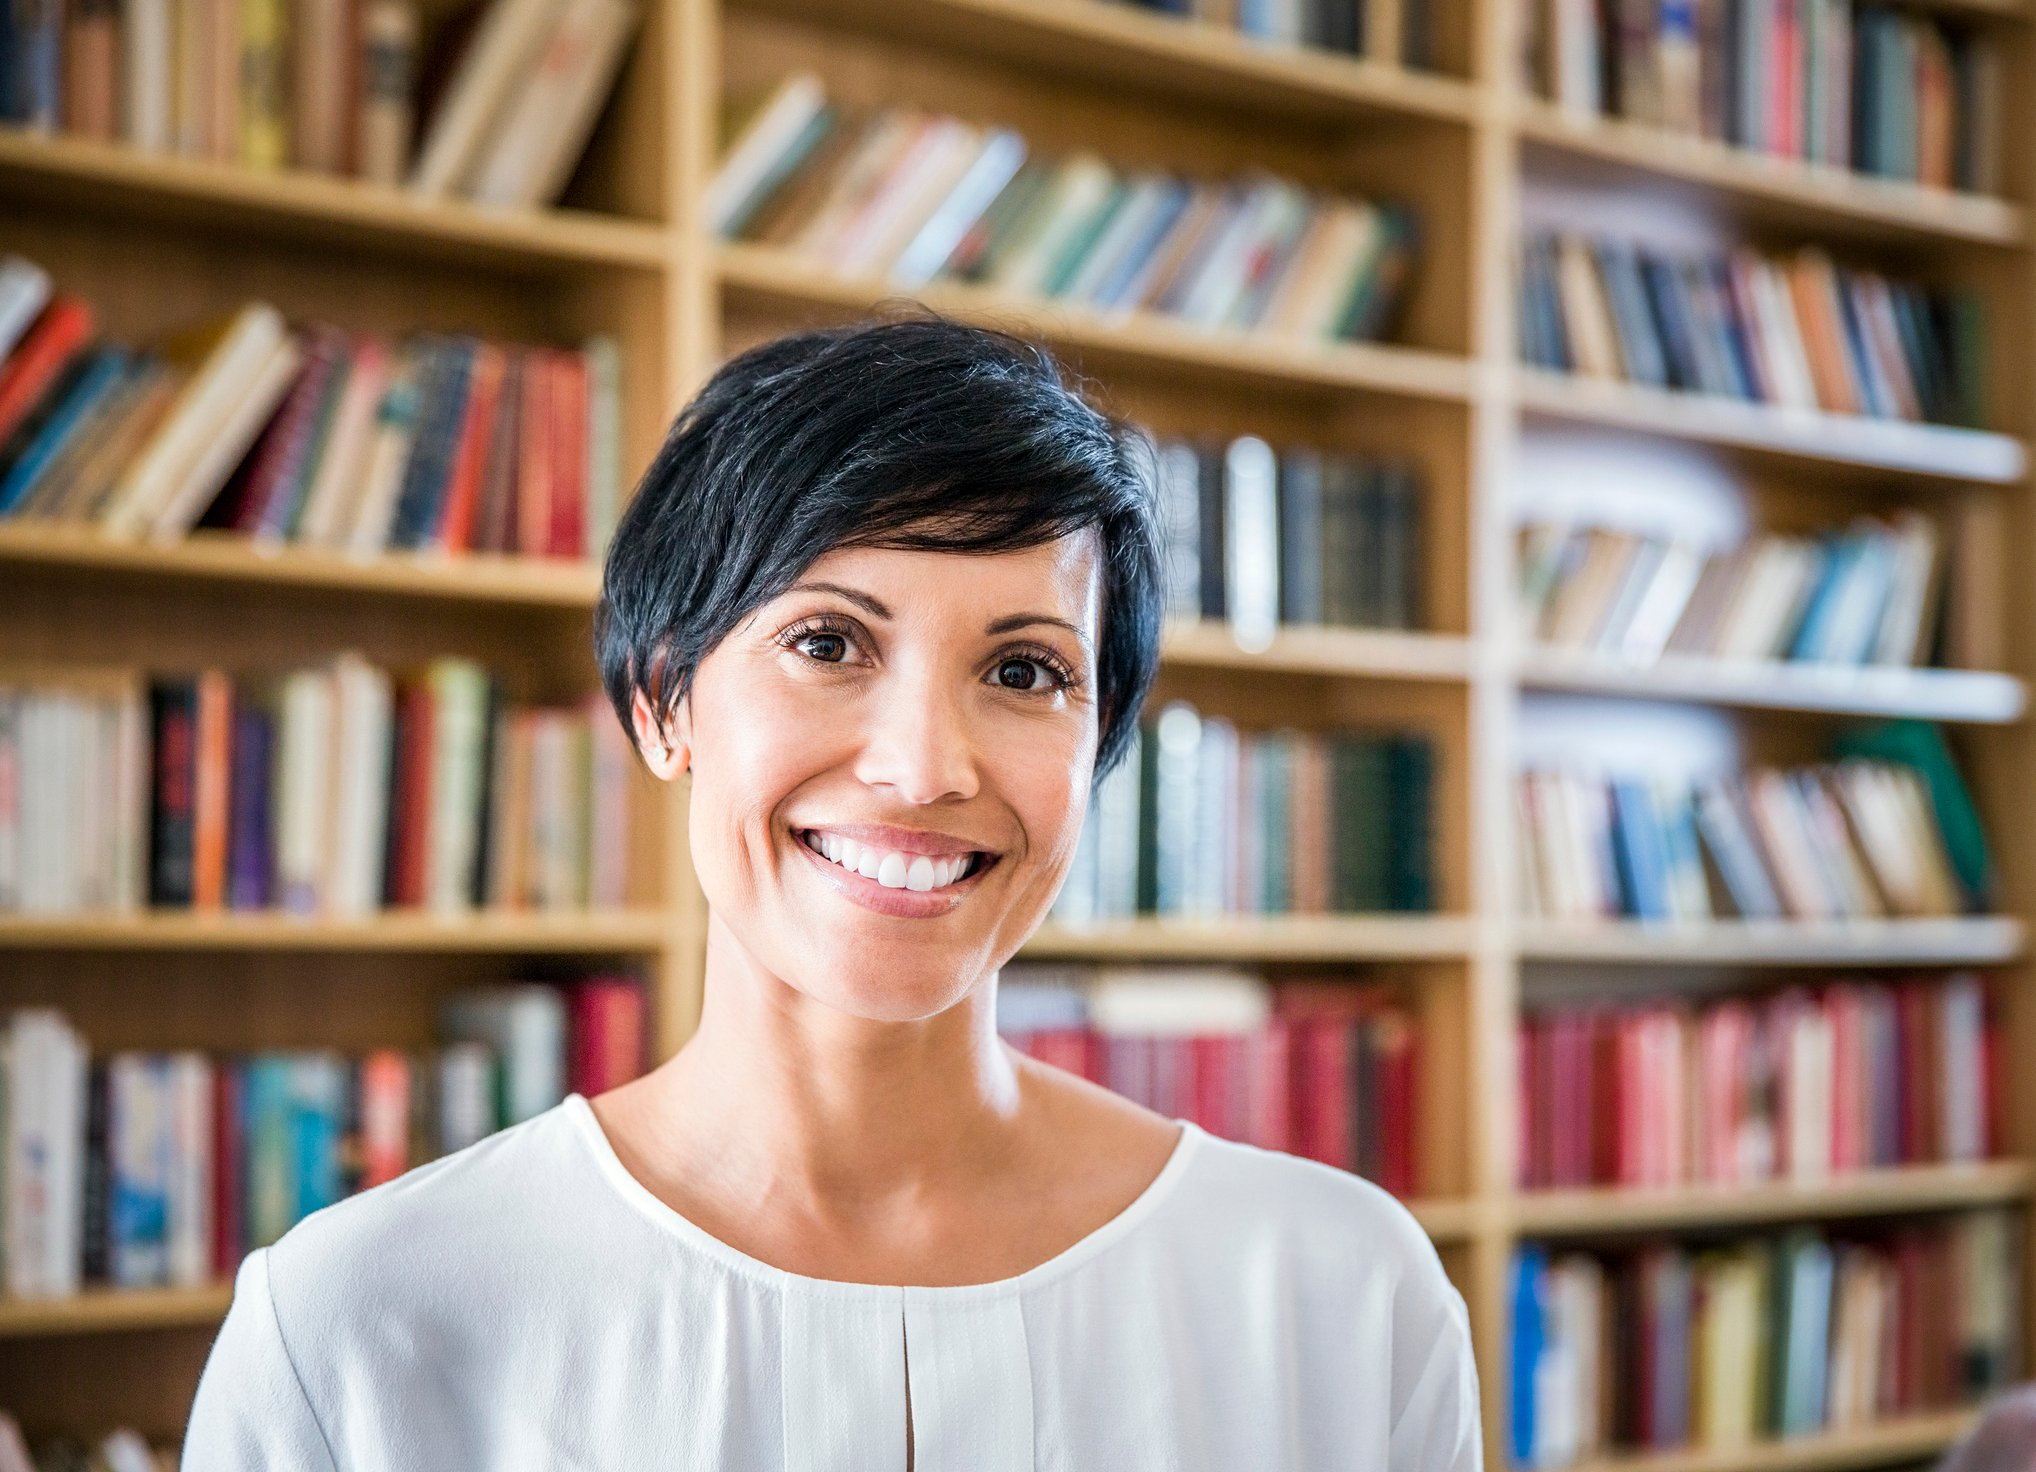 Portrait of confident woman smiling in library